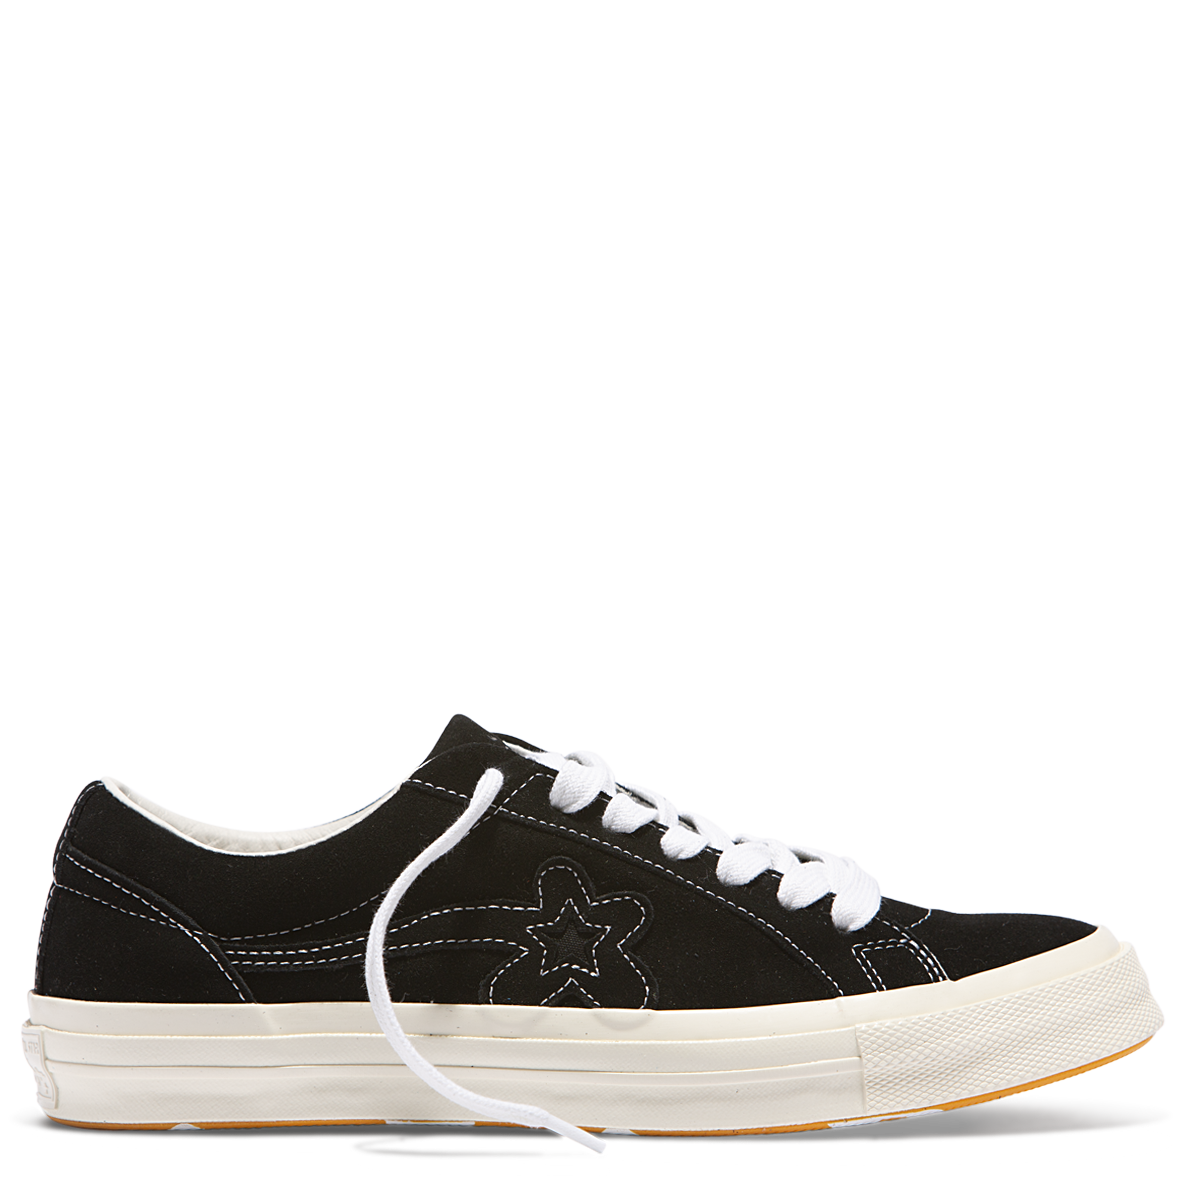 Converse One Star X Golf Le Fleur Sneakers Womens Sneakers Buy Shoes